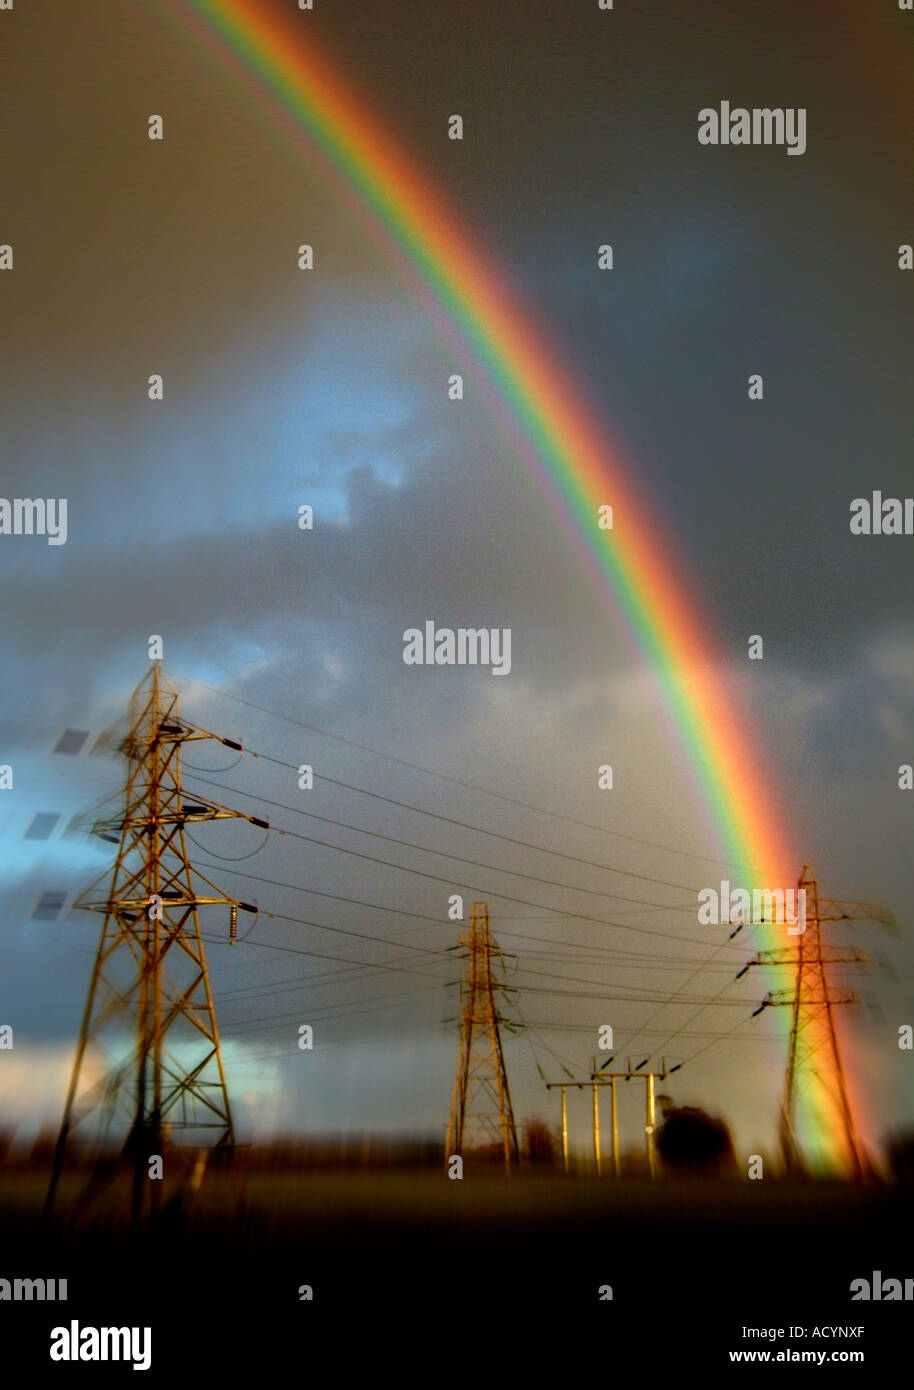 Rain bow over electricity Pylons Hales Norfolk England - Stock Image